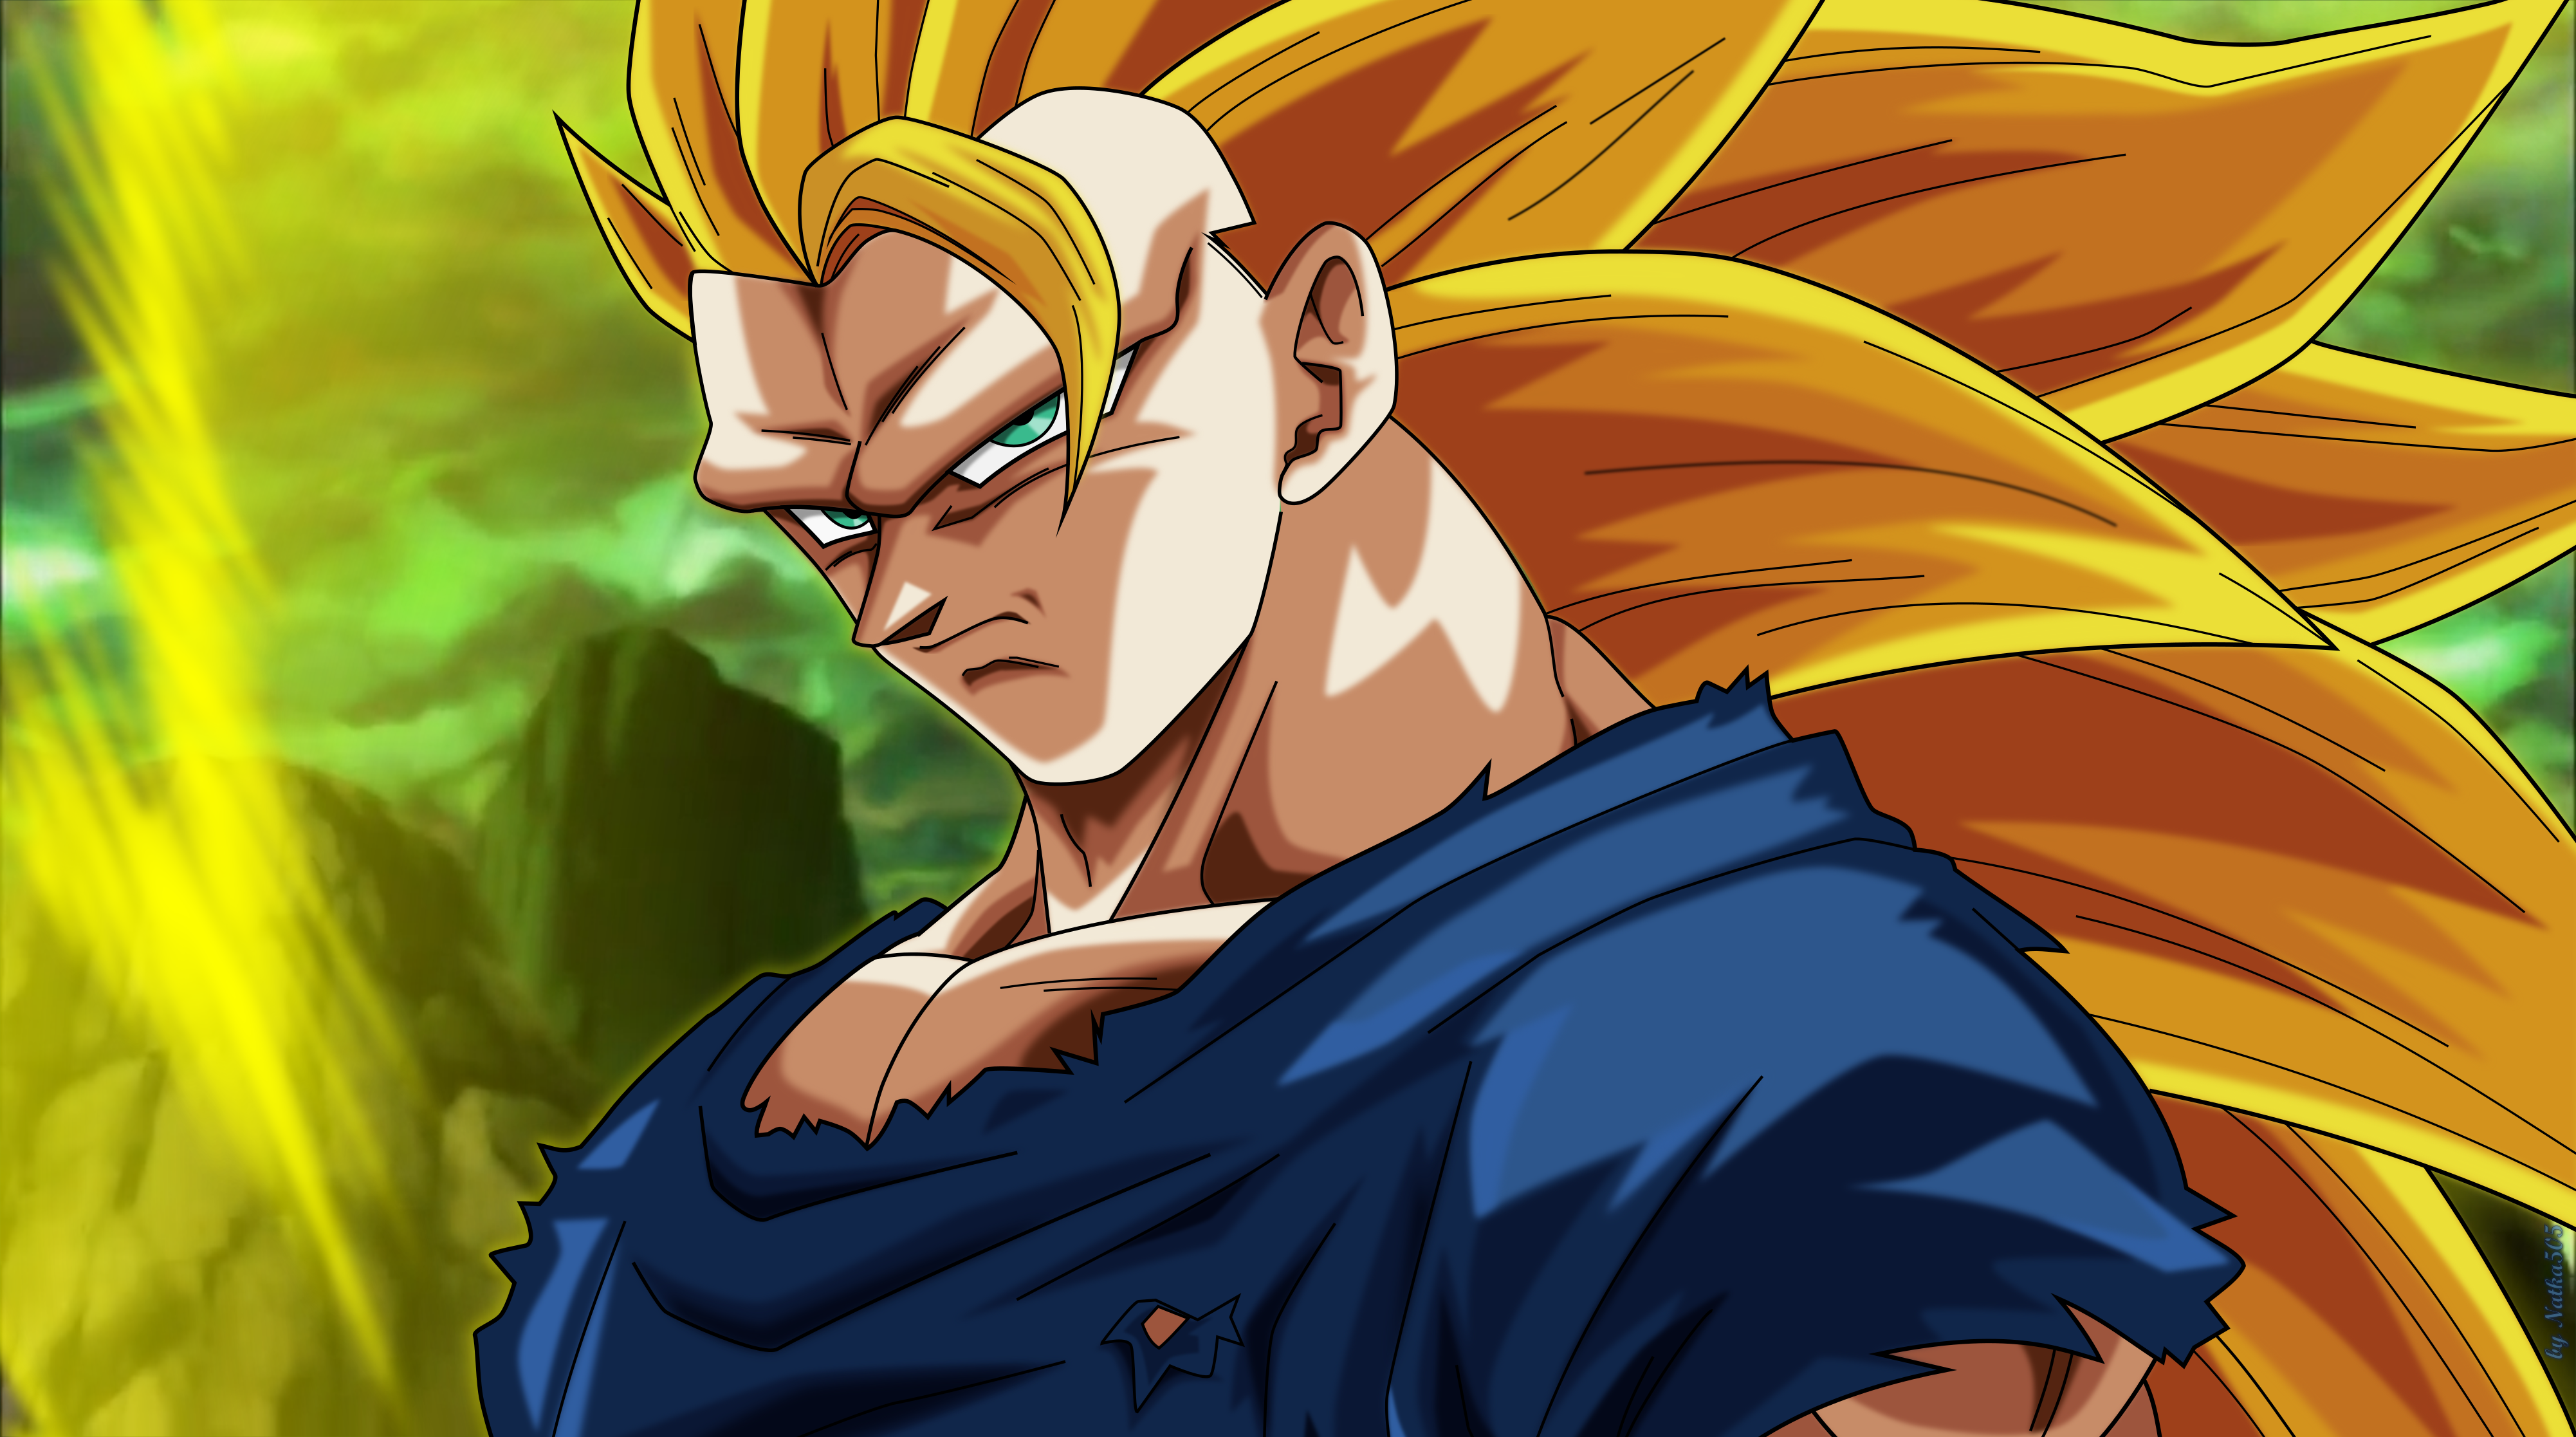 Goku Super Saiyan 3 4k Ultra HD Wallpaper And Background Image